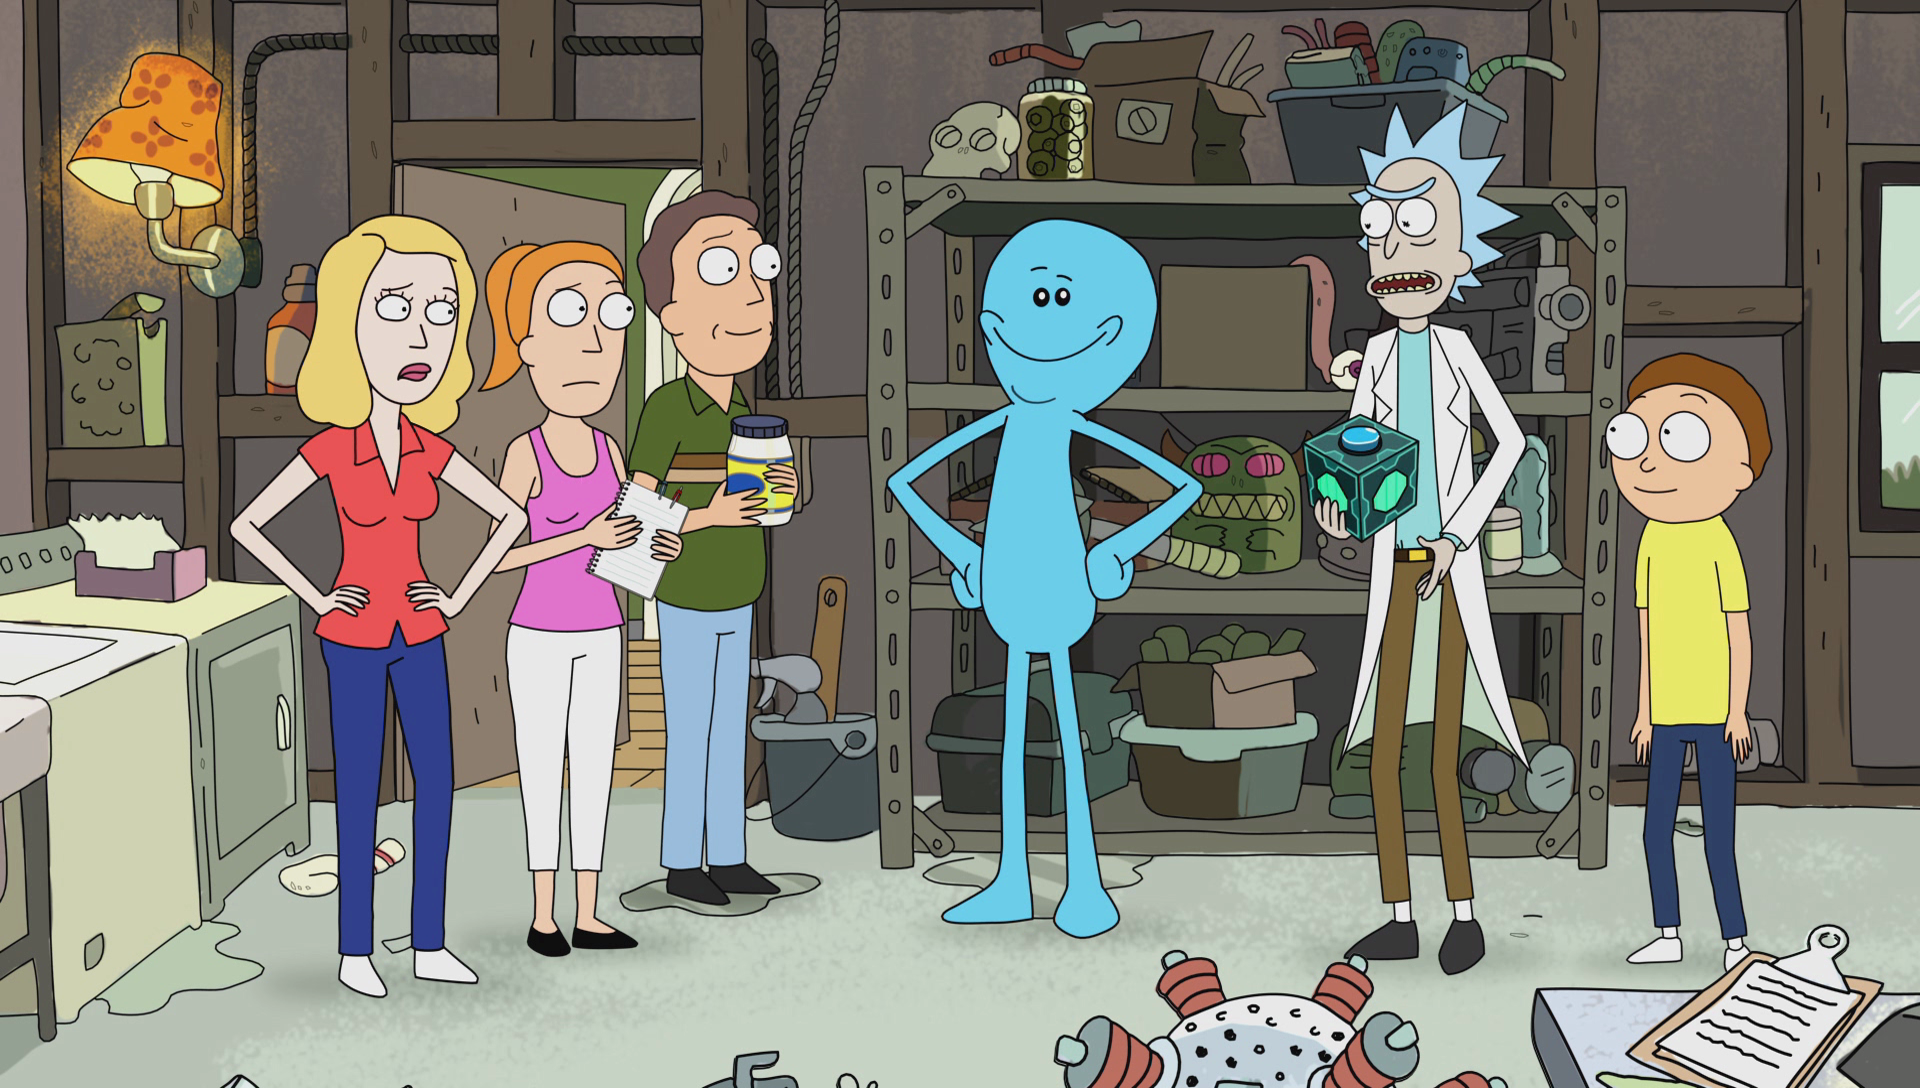 Rick and Morty Episodes Ranked from Worst to Best | Collider